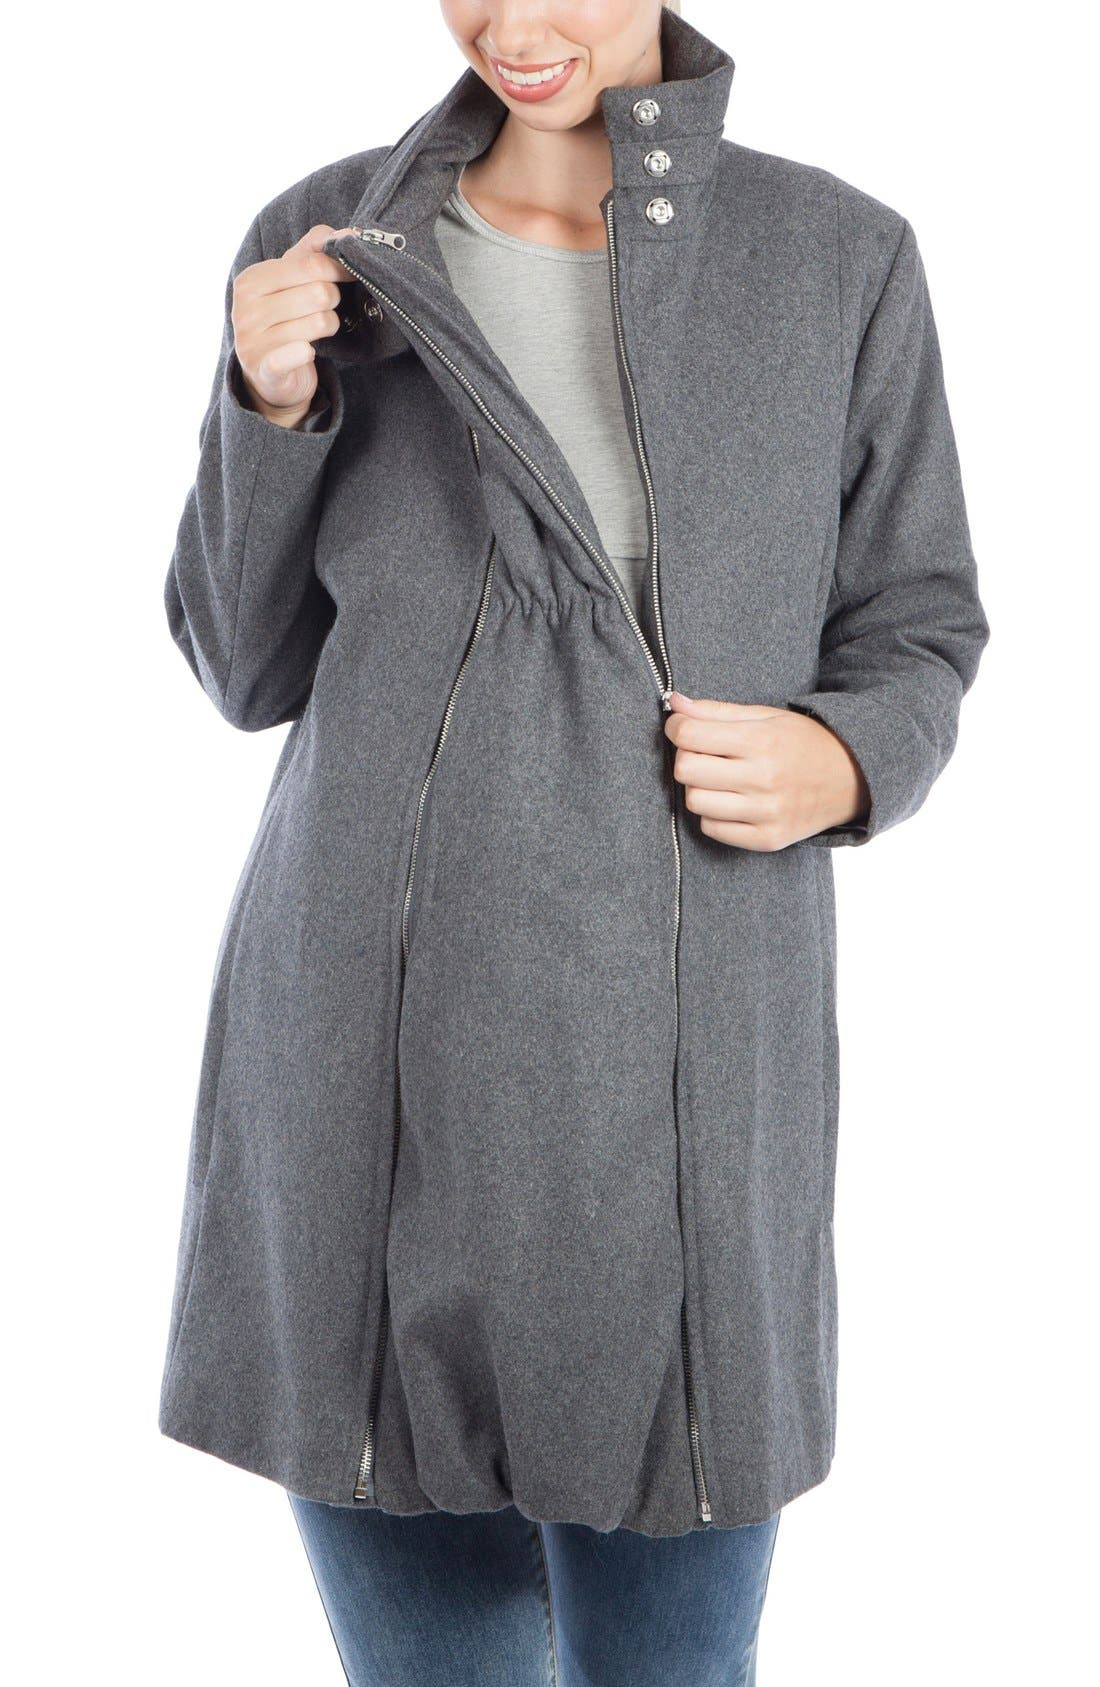 A-Line Convertible 3-in-1 Maternity Swing Coat,                             Alternate thumbnail 3, color,                             Grey